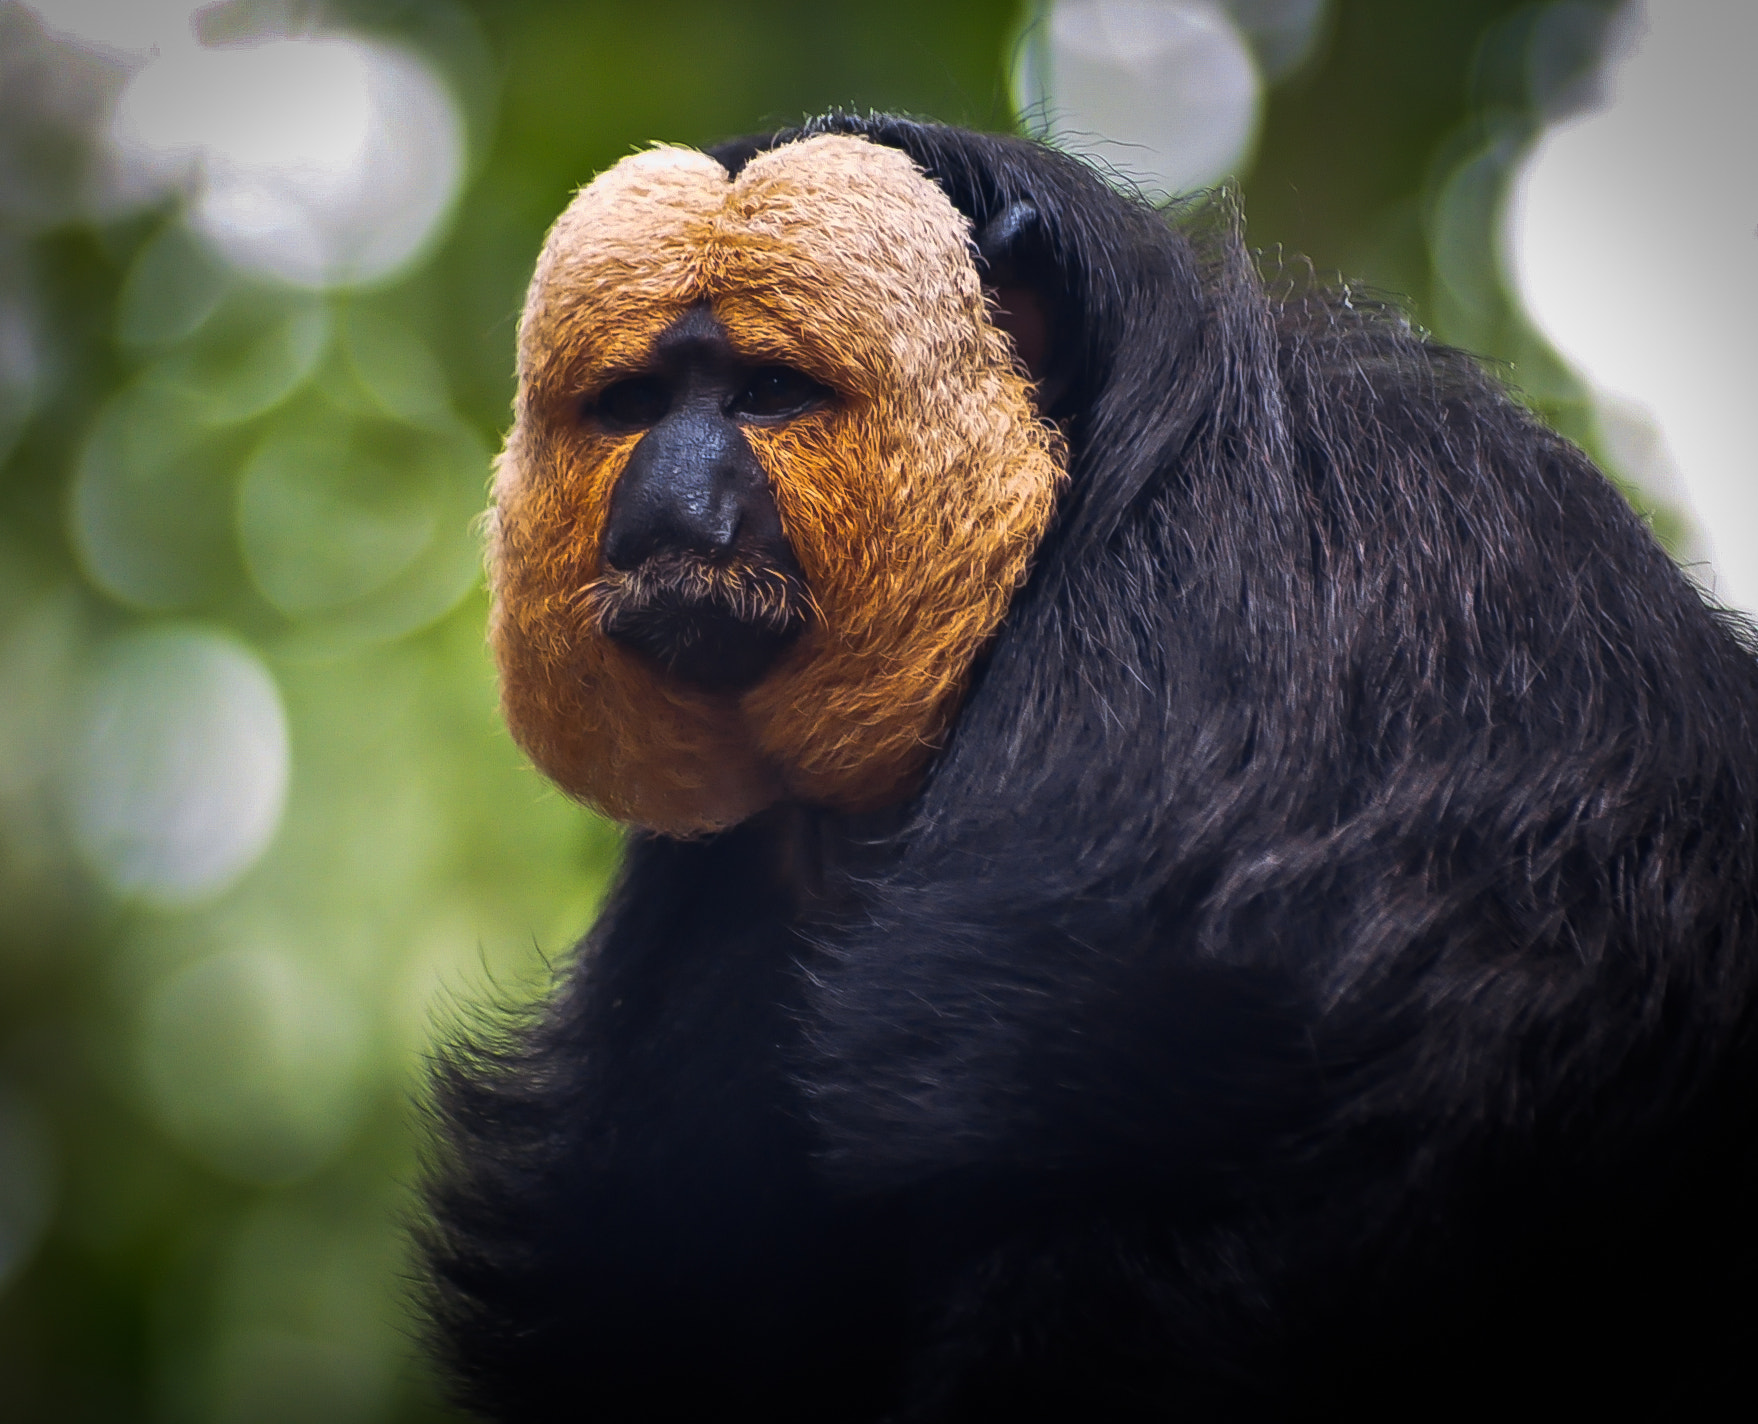 Photograph White Faced Saki Monkey by Xet Ng on 500px